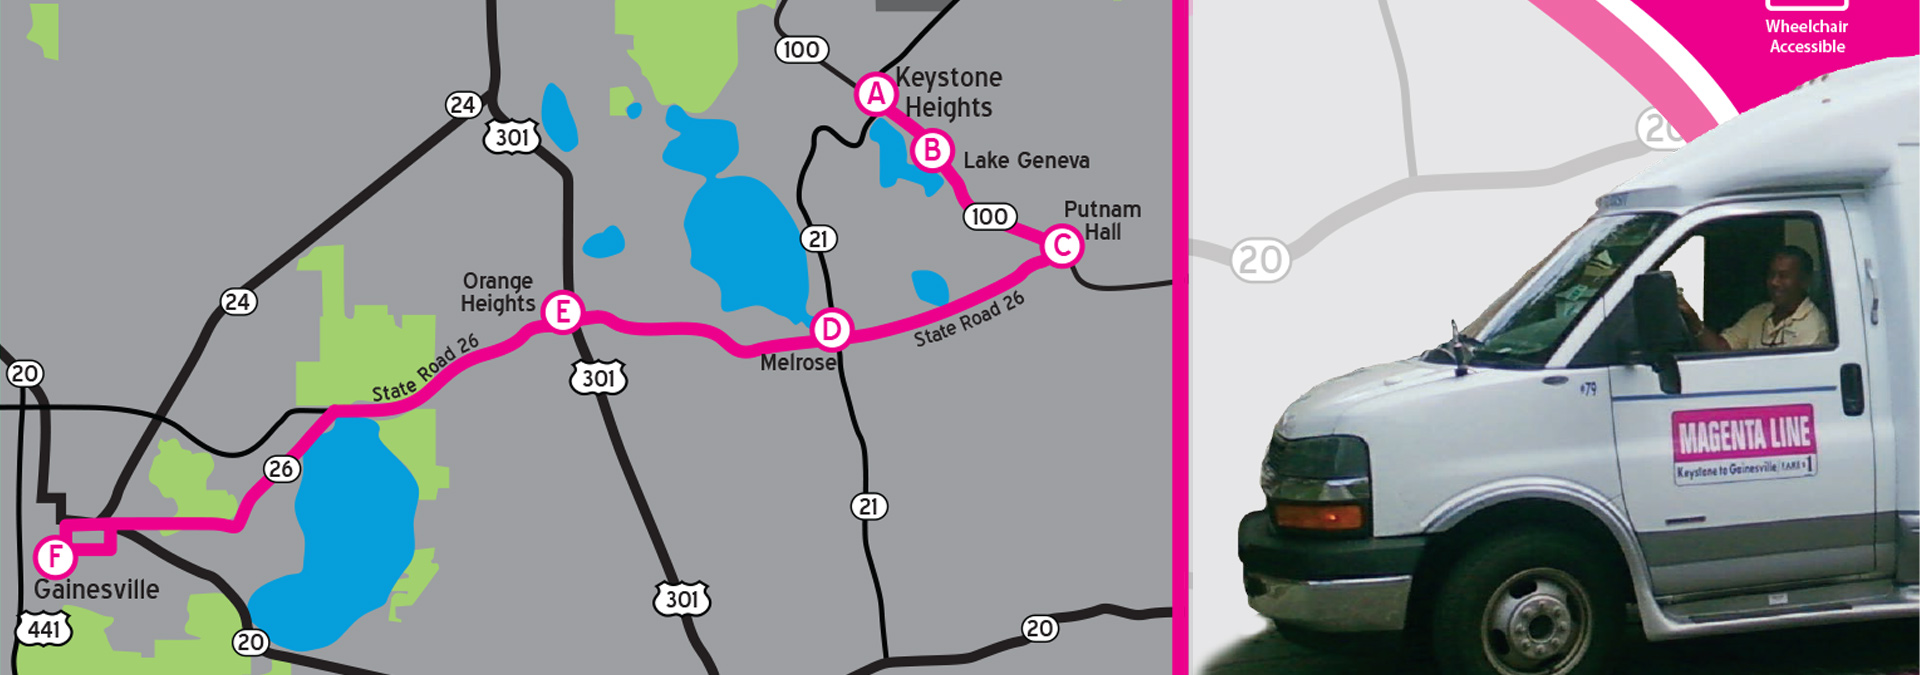 magenta keystone heights bus with map